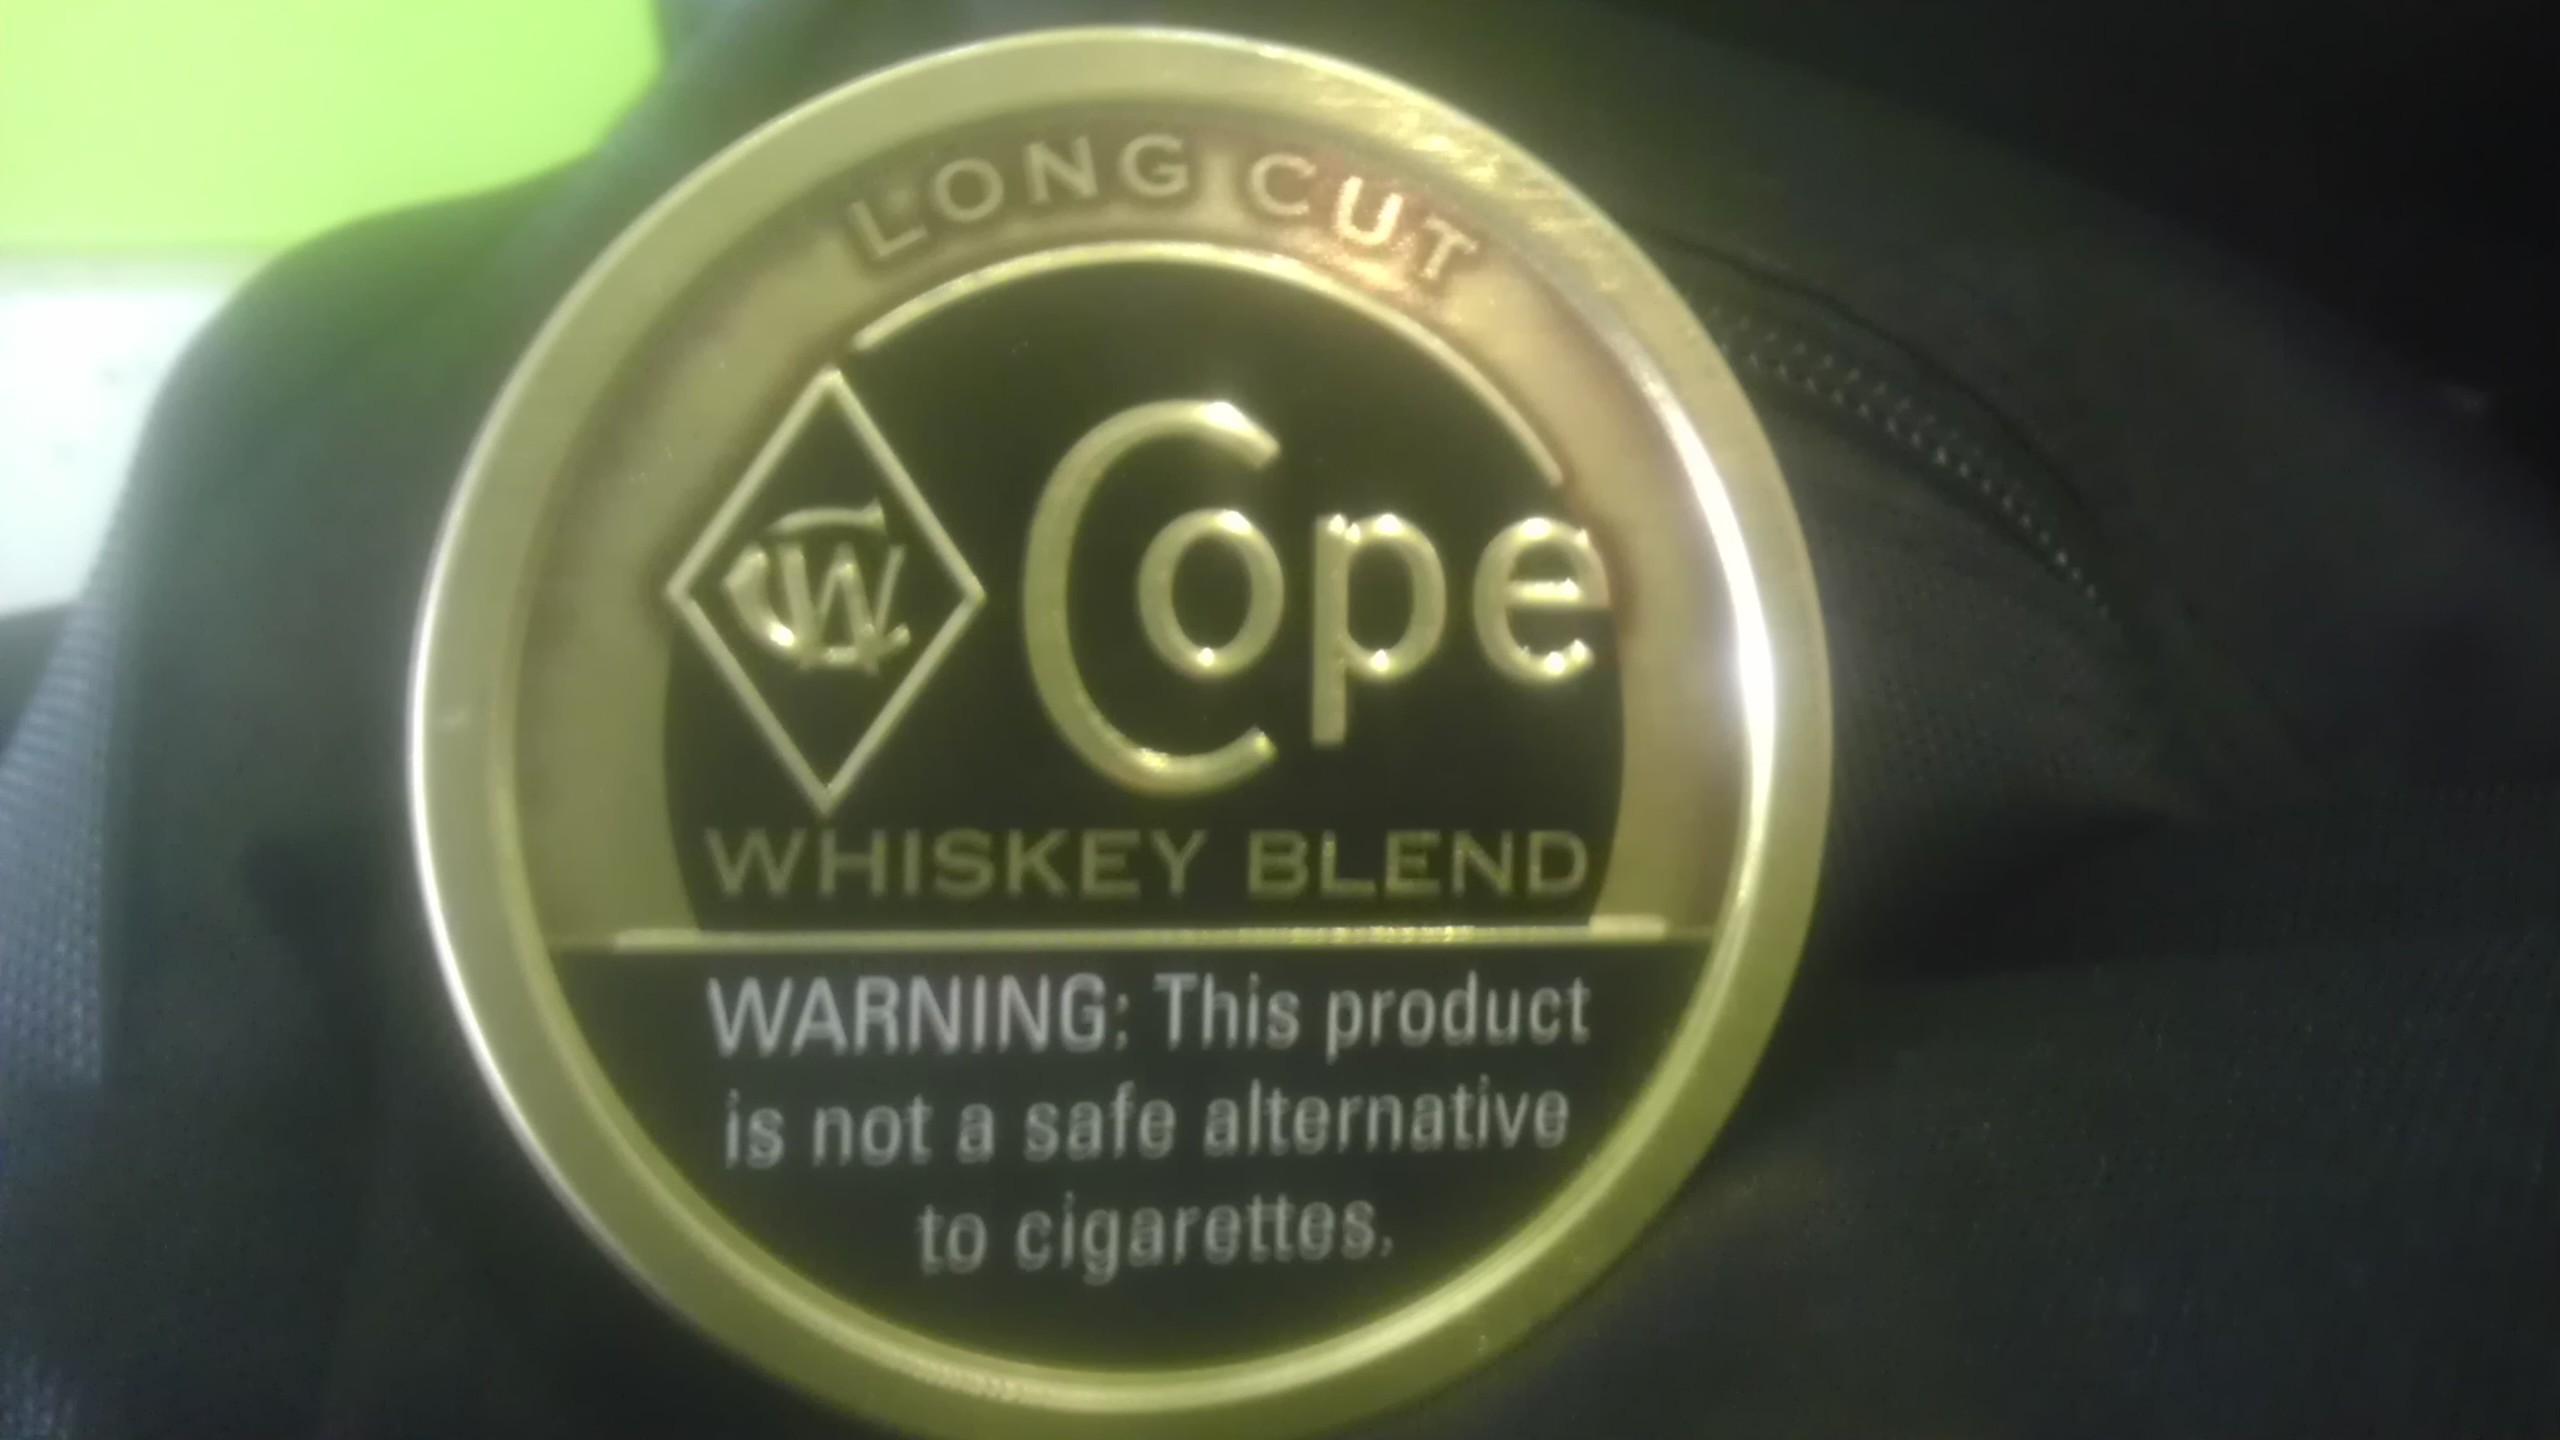 Finally got my hands on some cope whiskey!